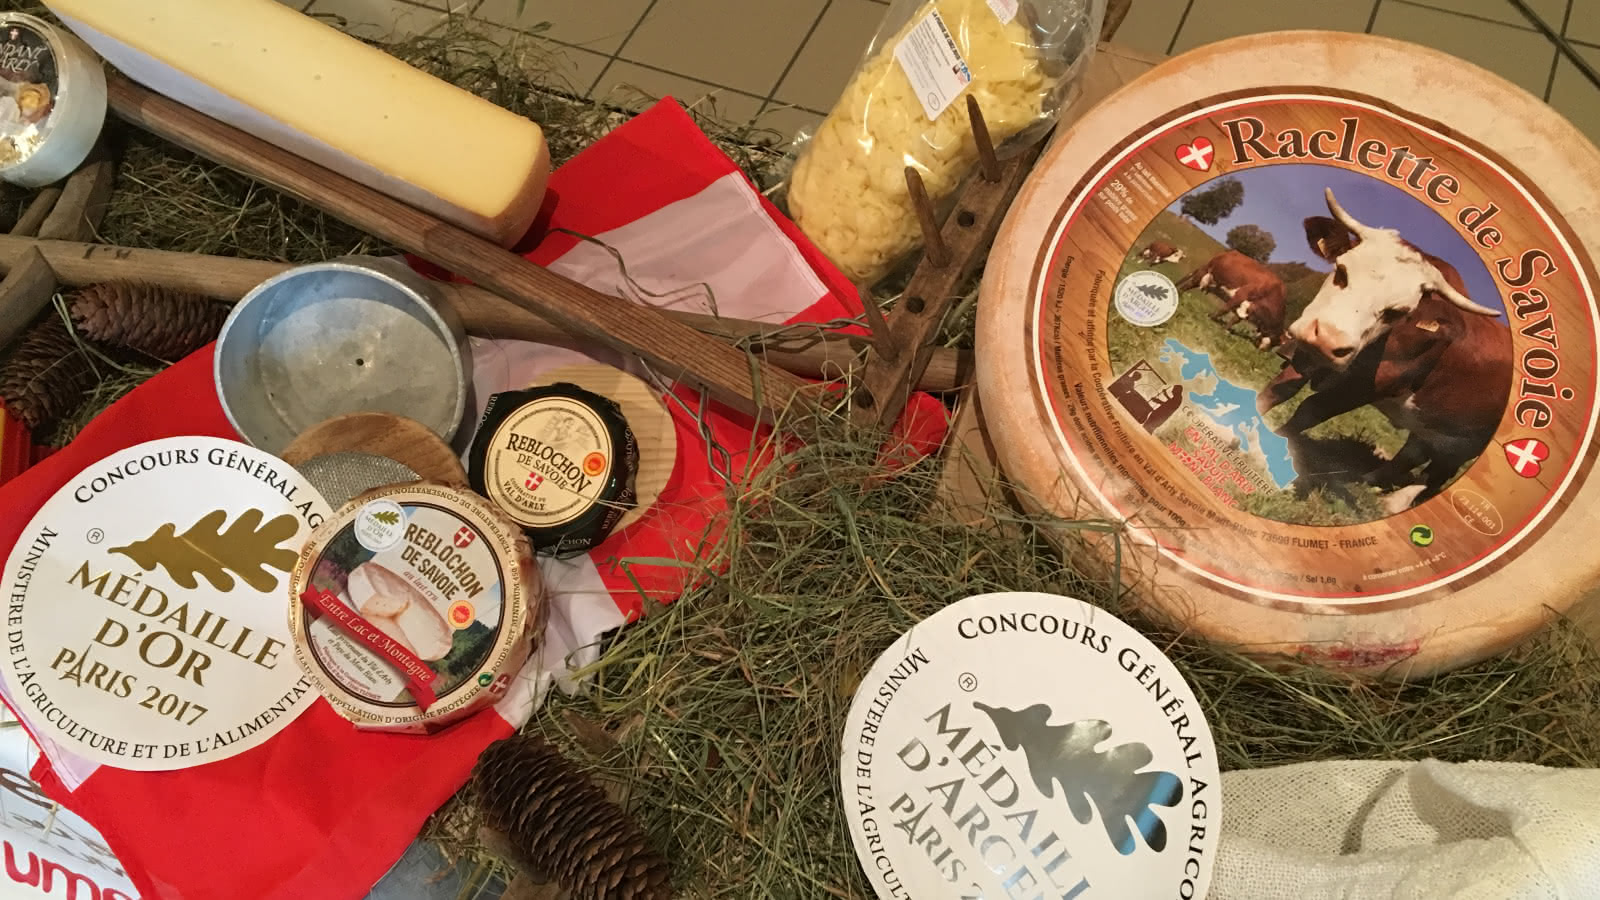 Coopérative fruititère val d'arly Fromage